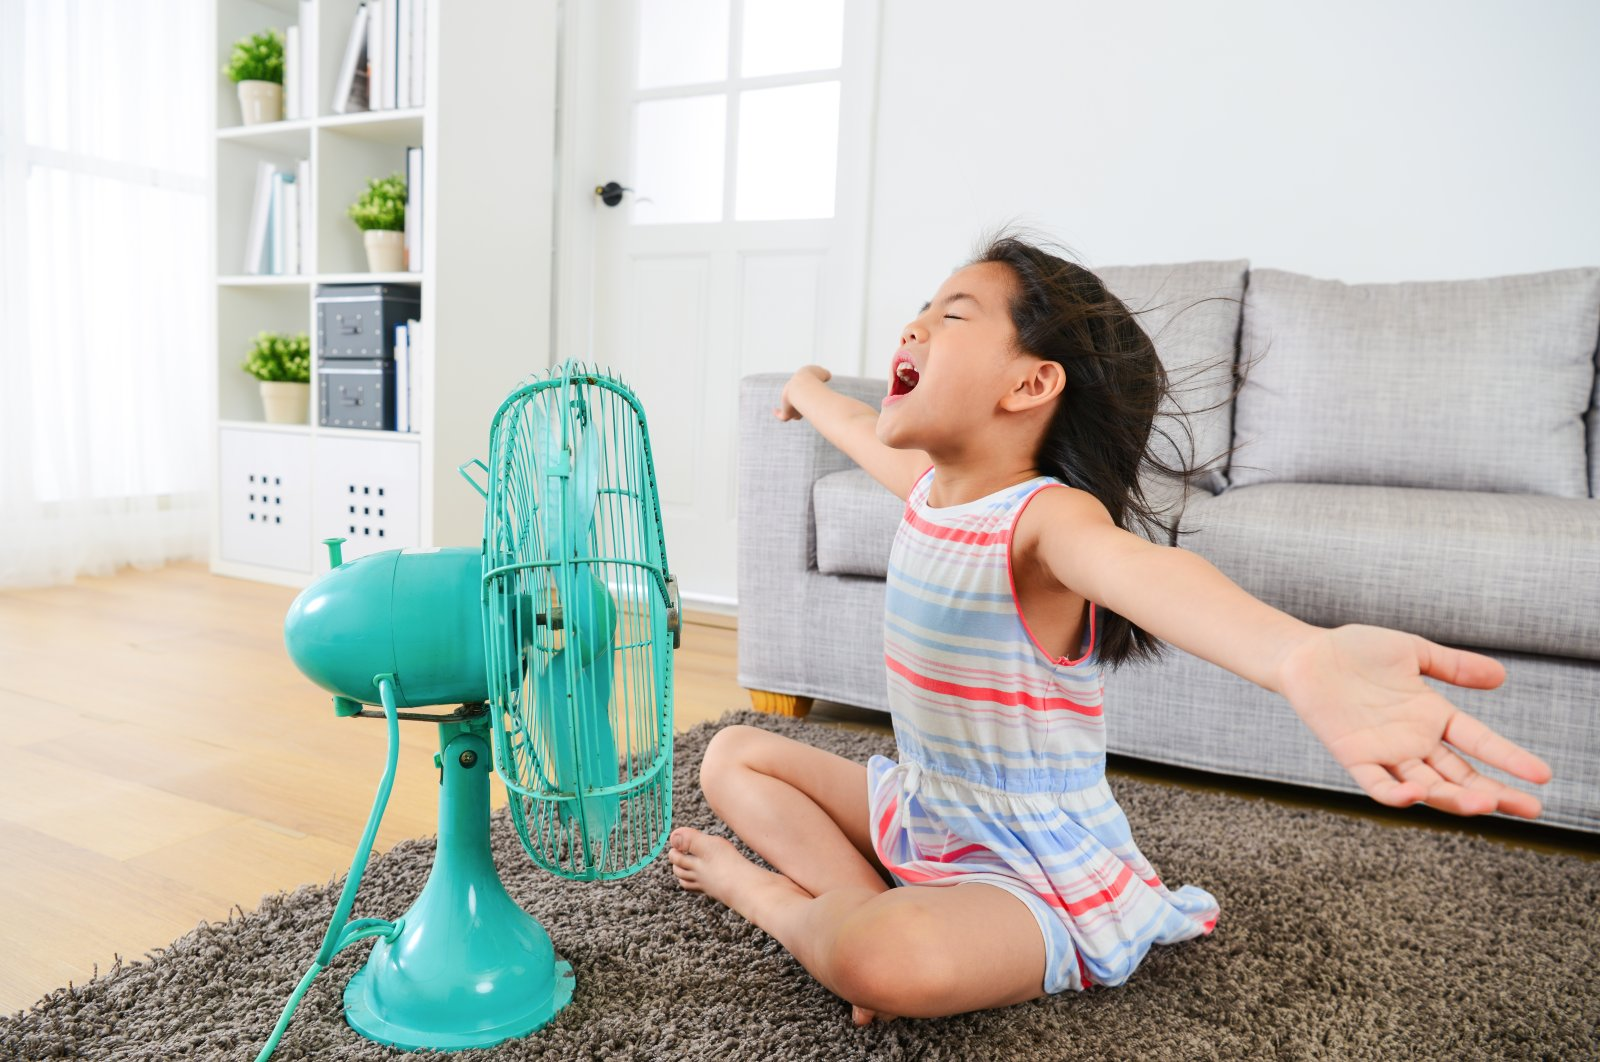 Timing is everything when it comes to opening doors and windows on hot days. (Shutterstock Photo)